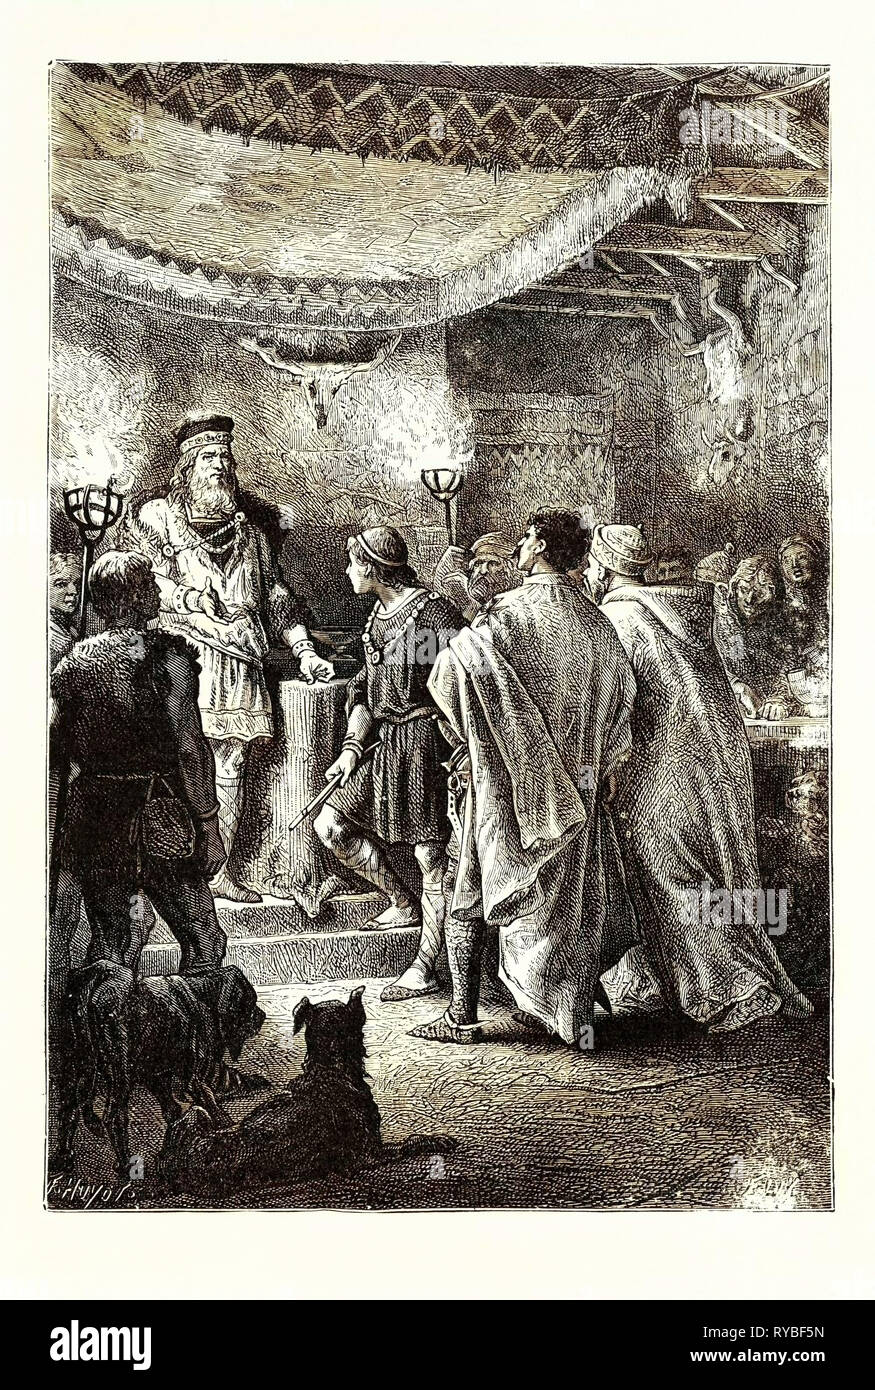 Saxon Noble Receiving Stranger Guests in His Hall - Stock Image